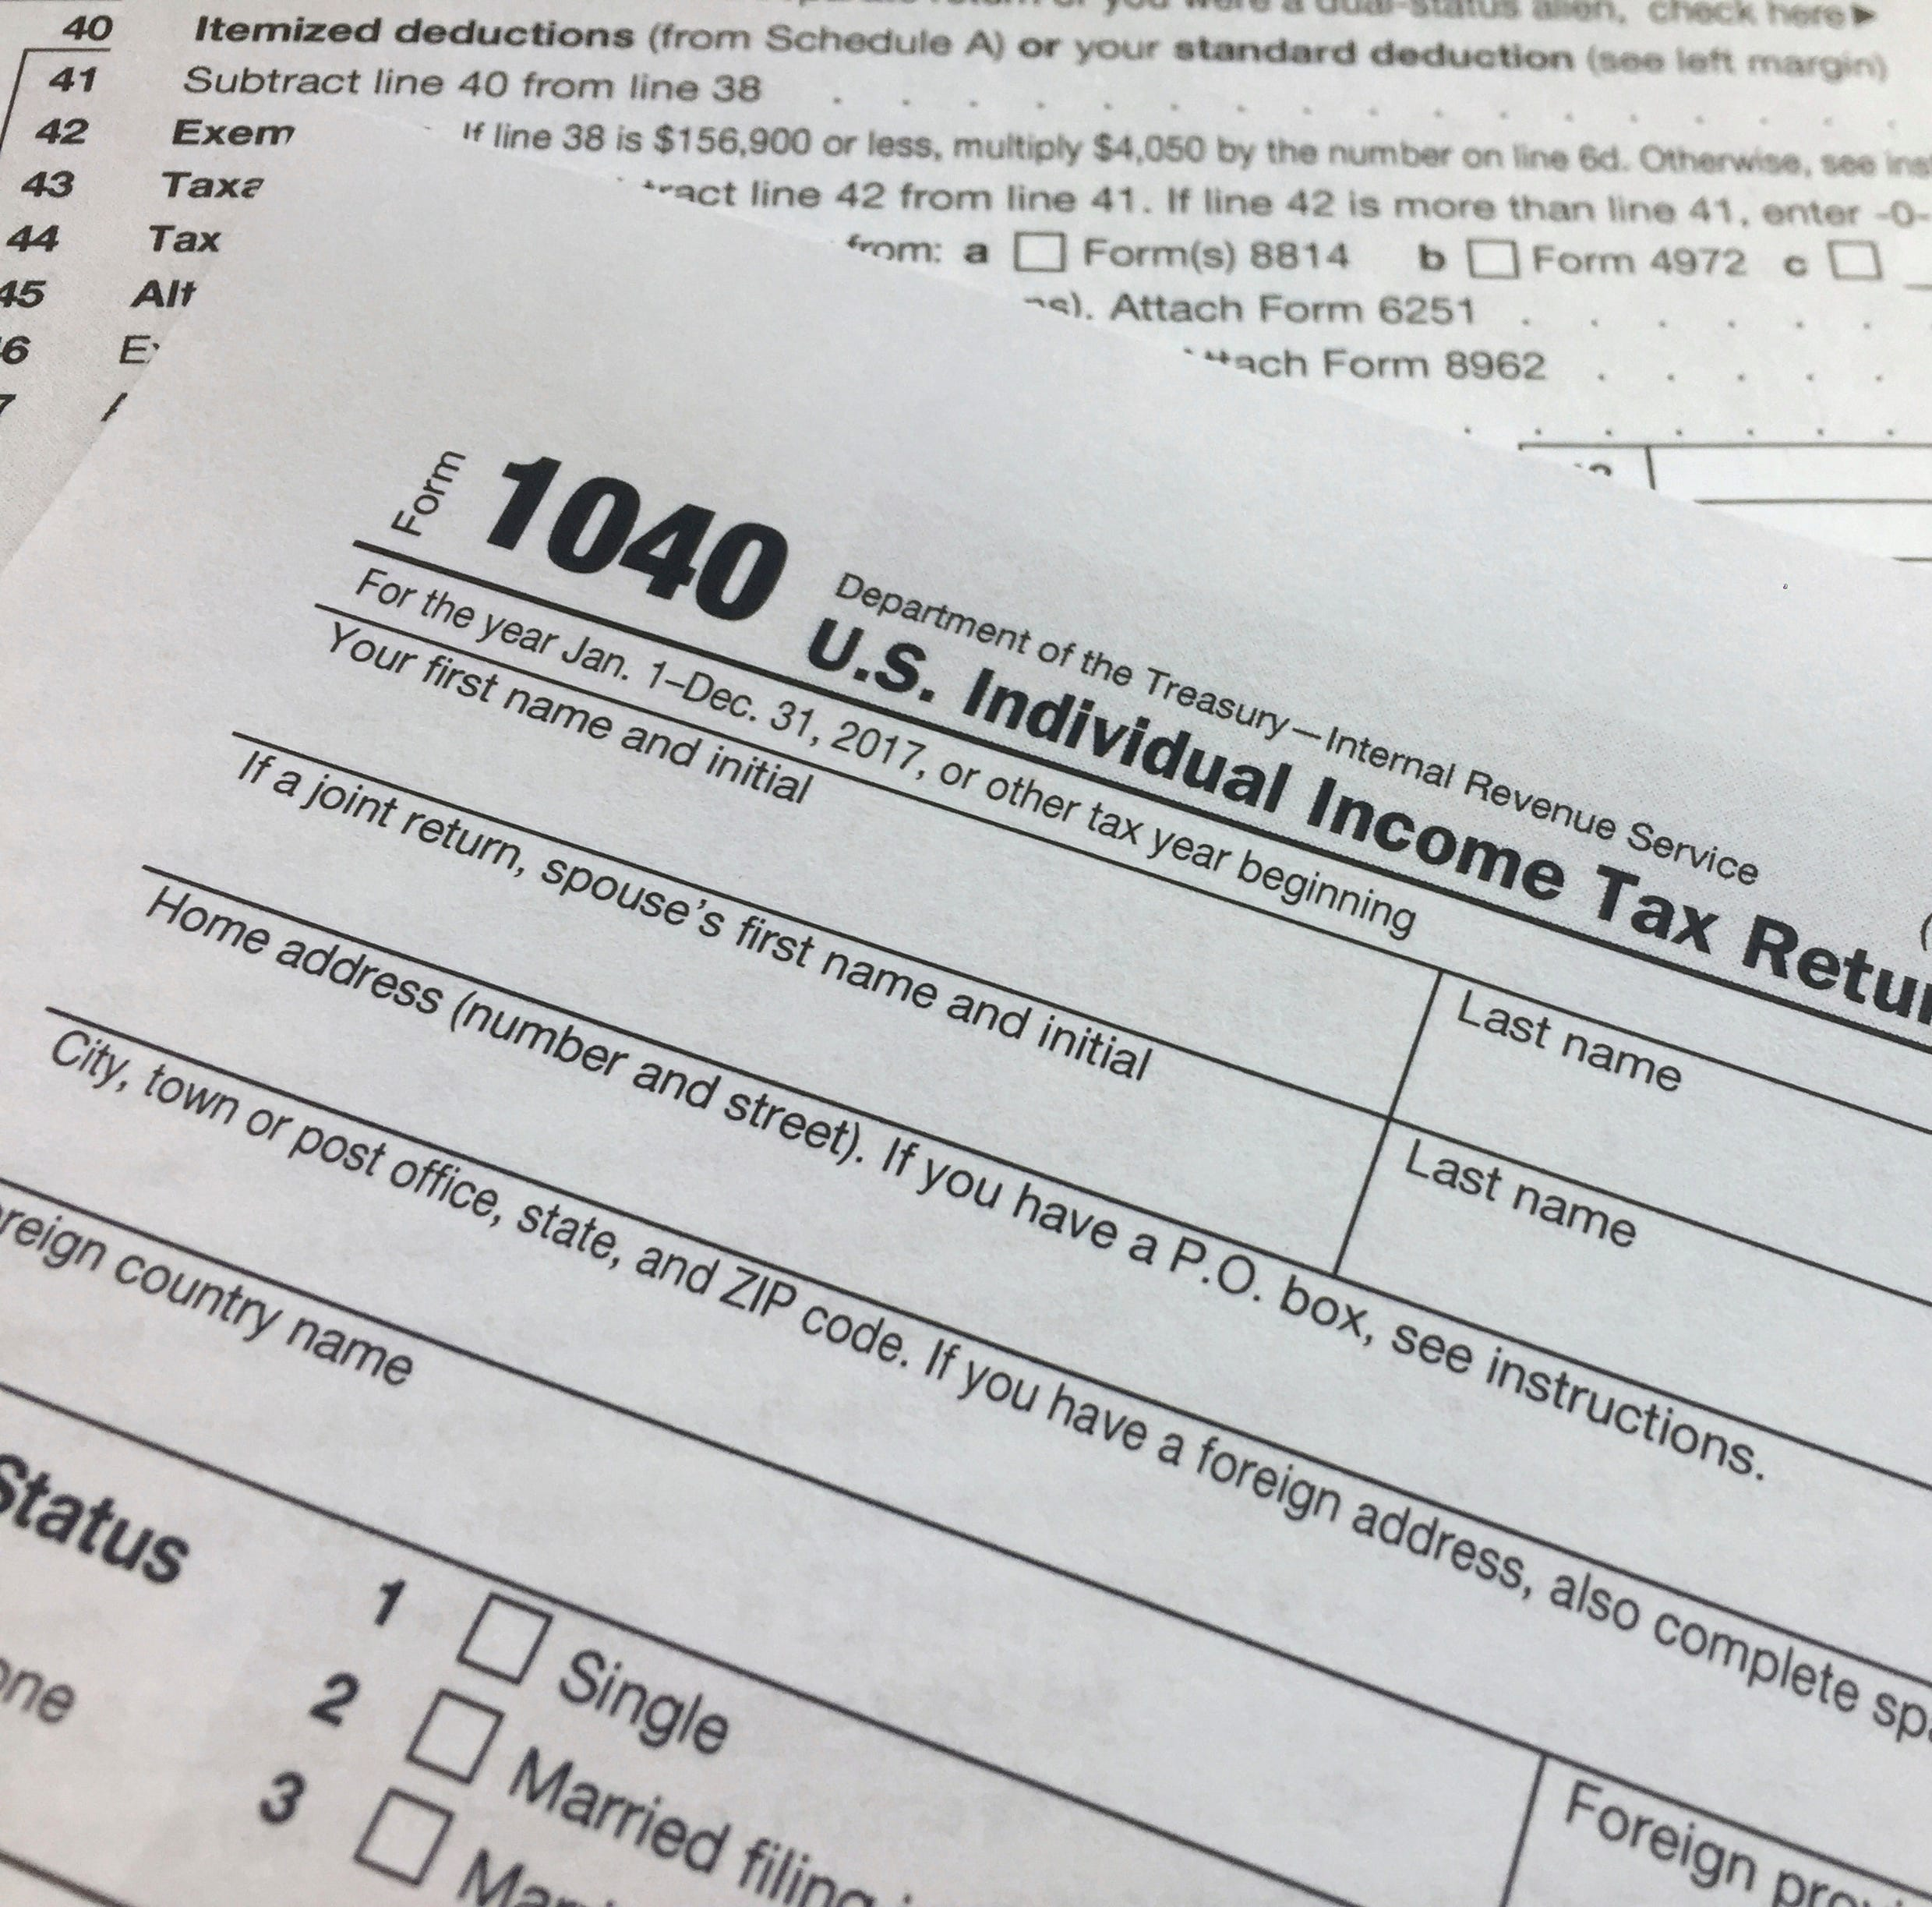 IRS to waive penalties for under-withholding after Trump tax changes